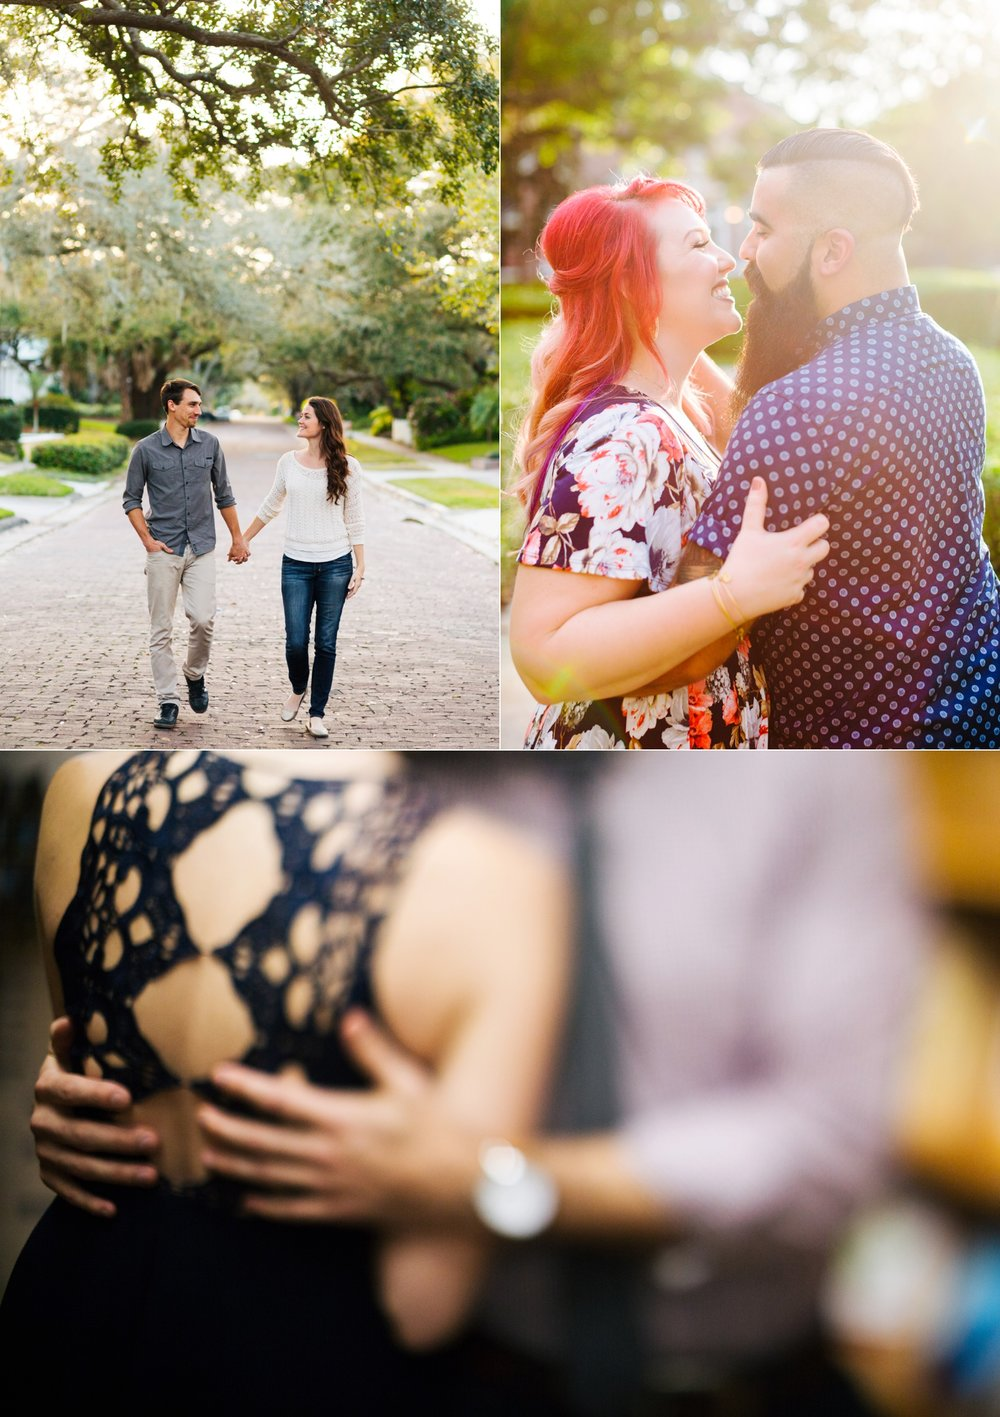 Jake & Katie Photography Best of Couples 2016-059.jpg